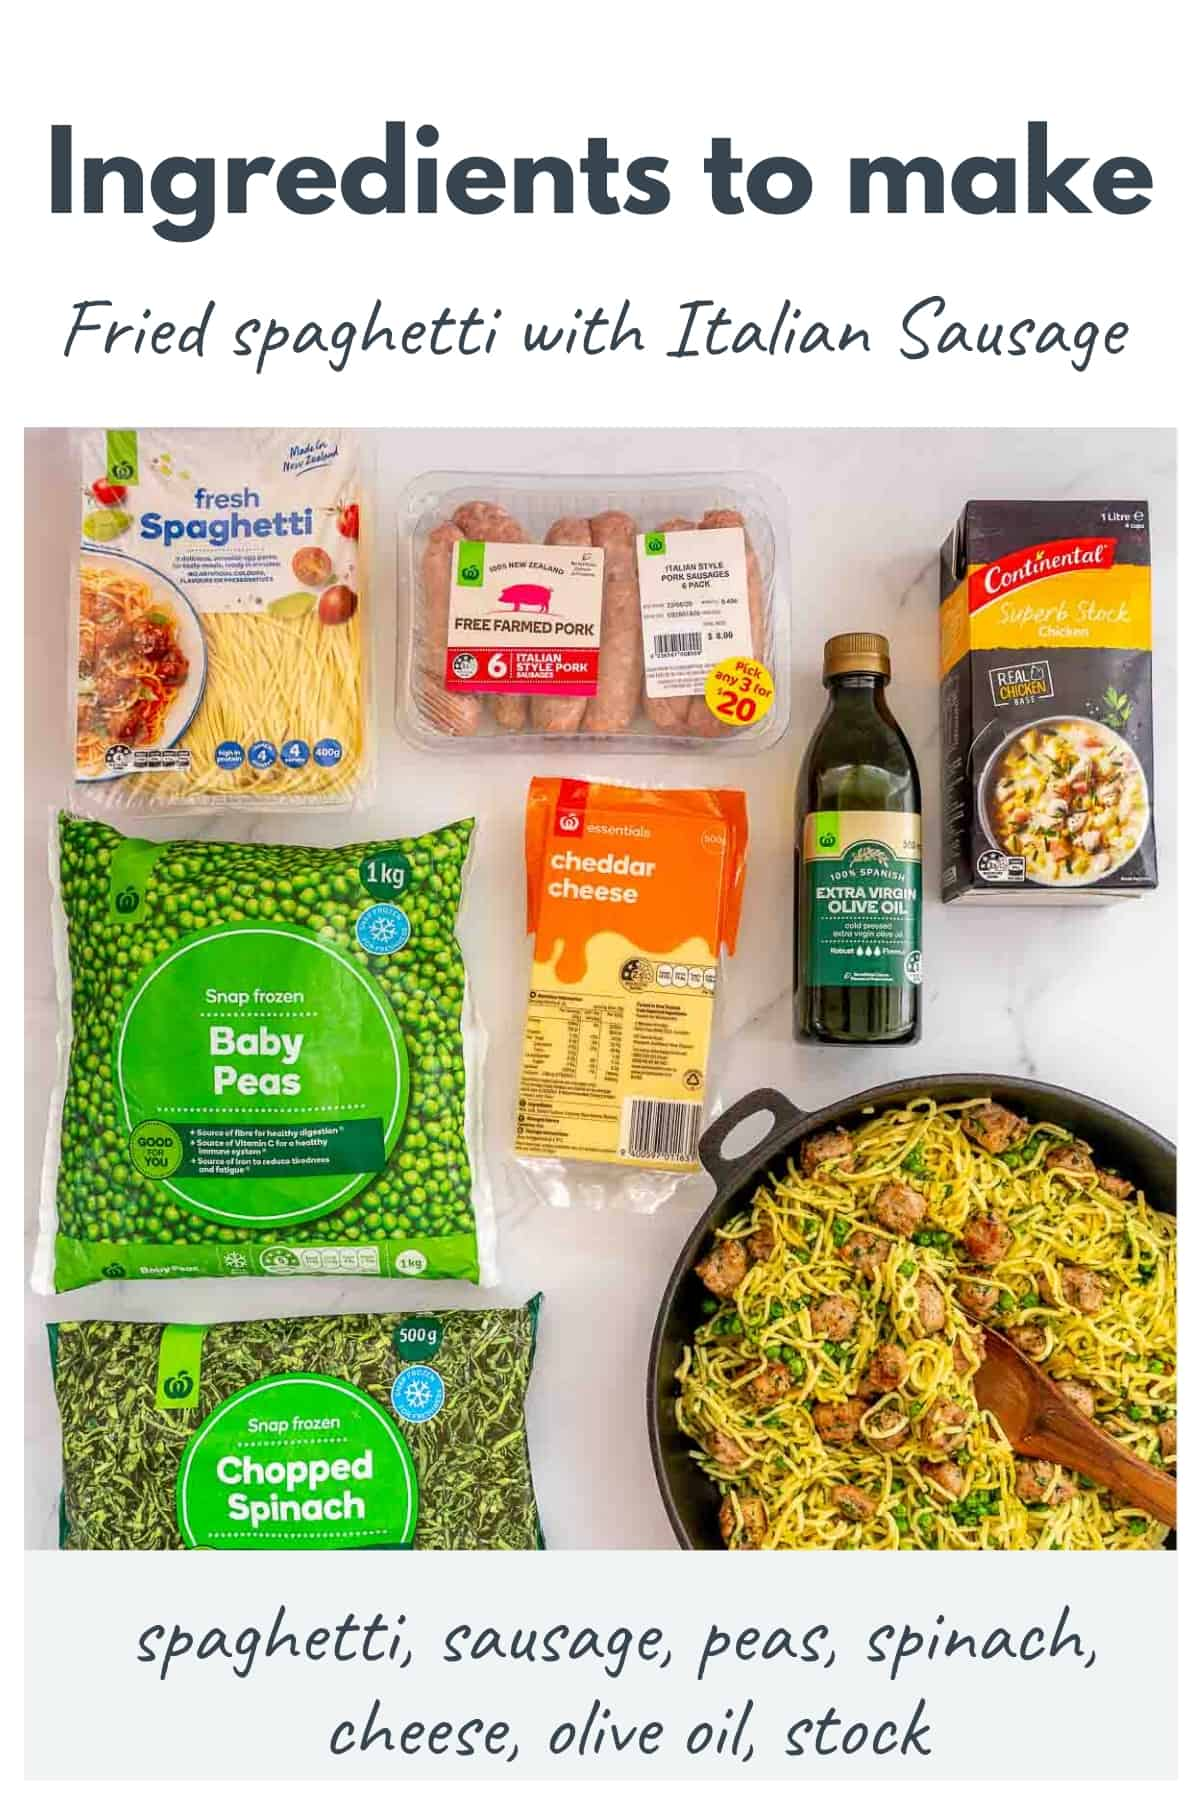 Image showing the 7 ingredients needed for this pasta recipe